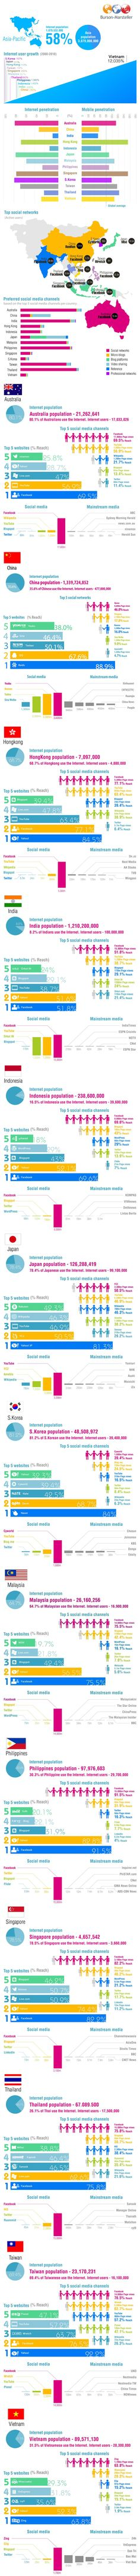 Social Media in Asia Pacific #infographics